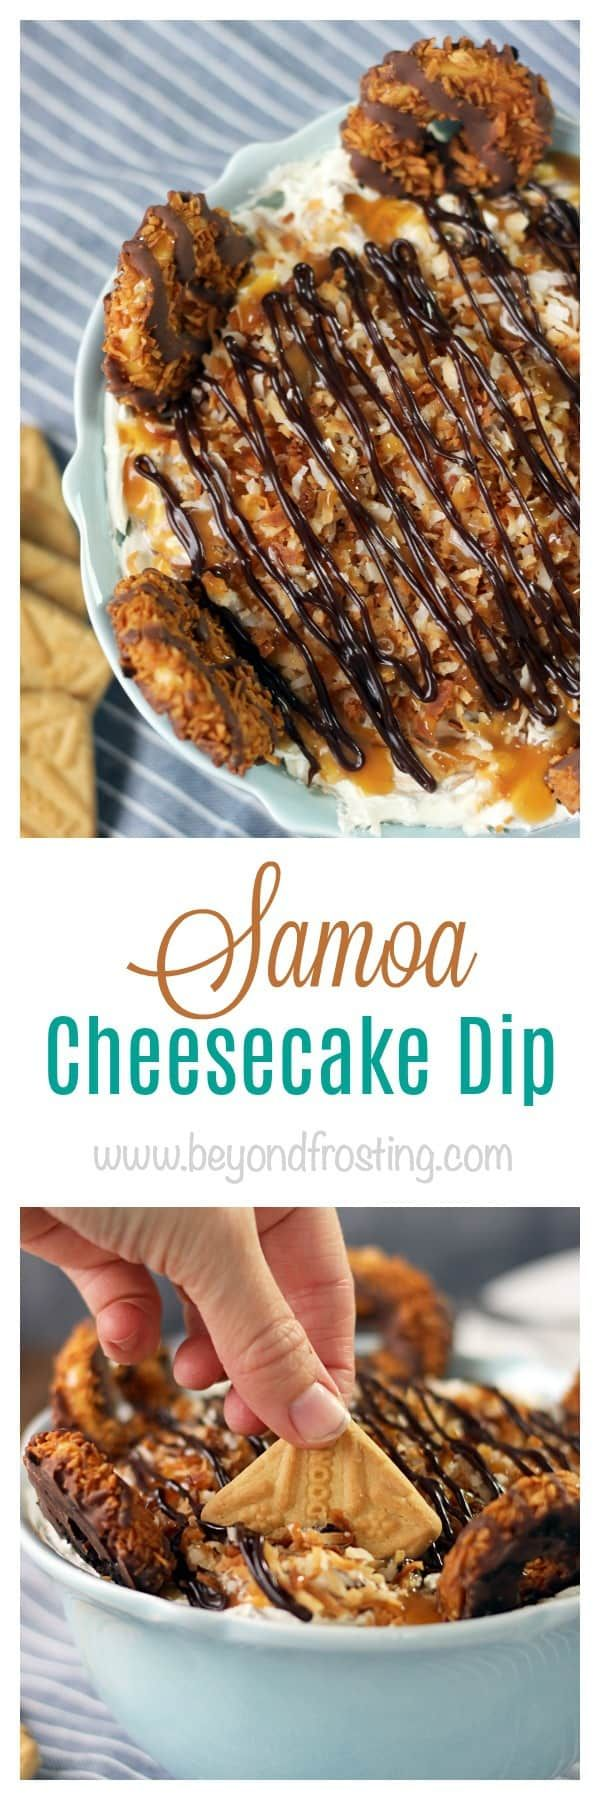 This Samoa Cheesecake is like a seven layer dip. It's got a caramel cheesecake filling layered with fudge sauce, toasted coconut and shortbread cookies.